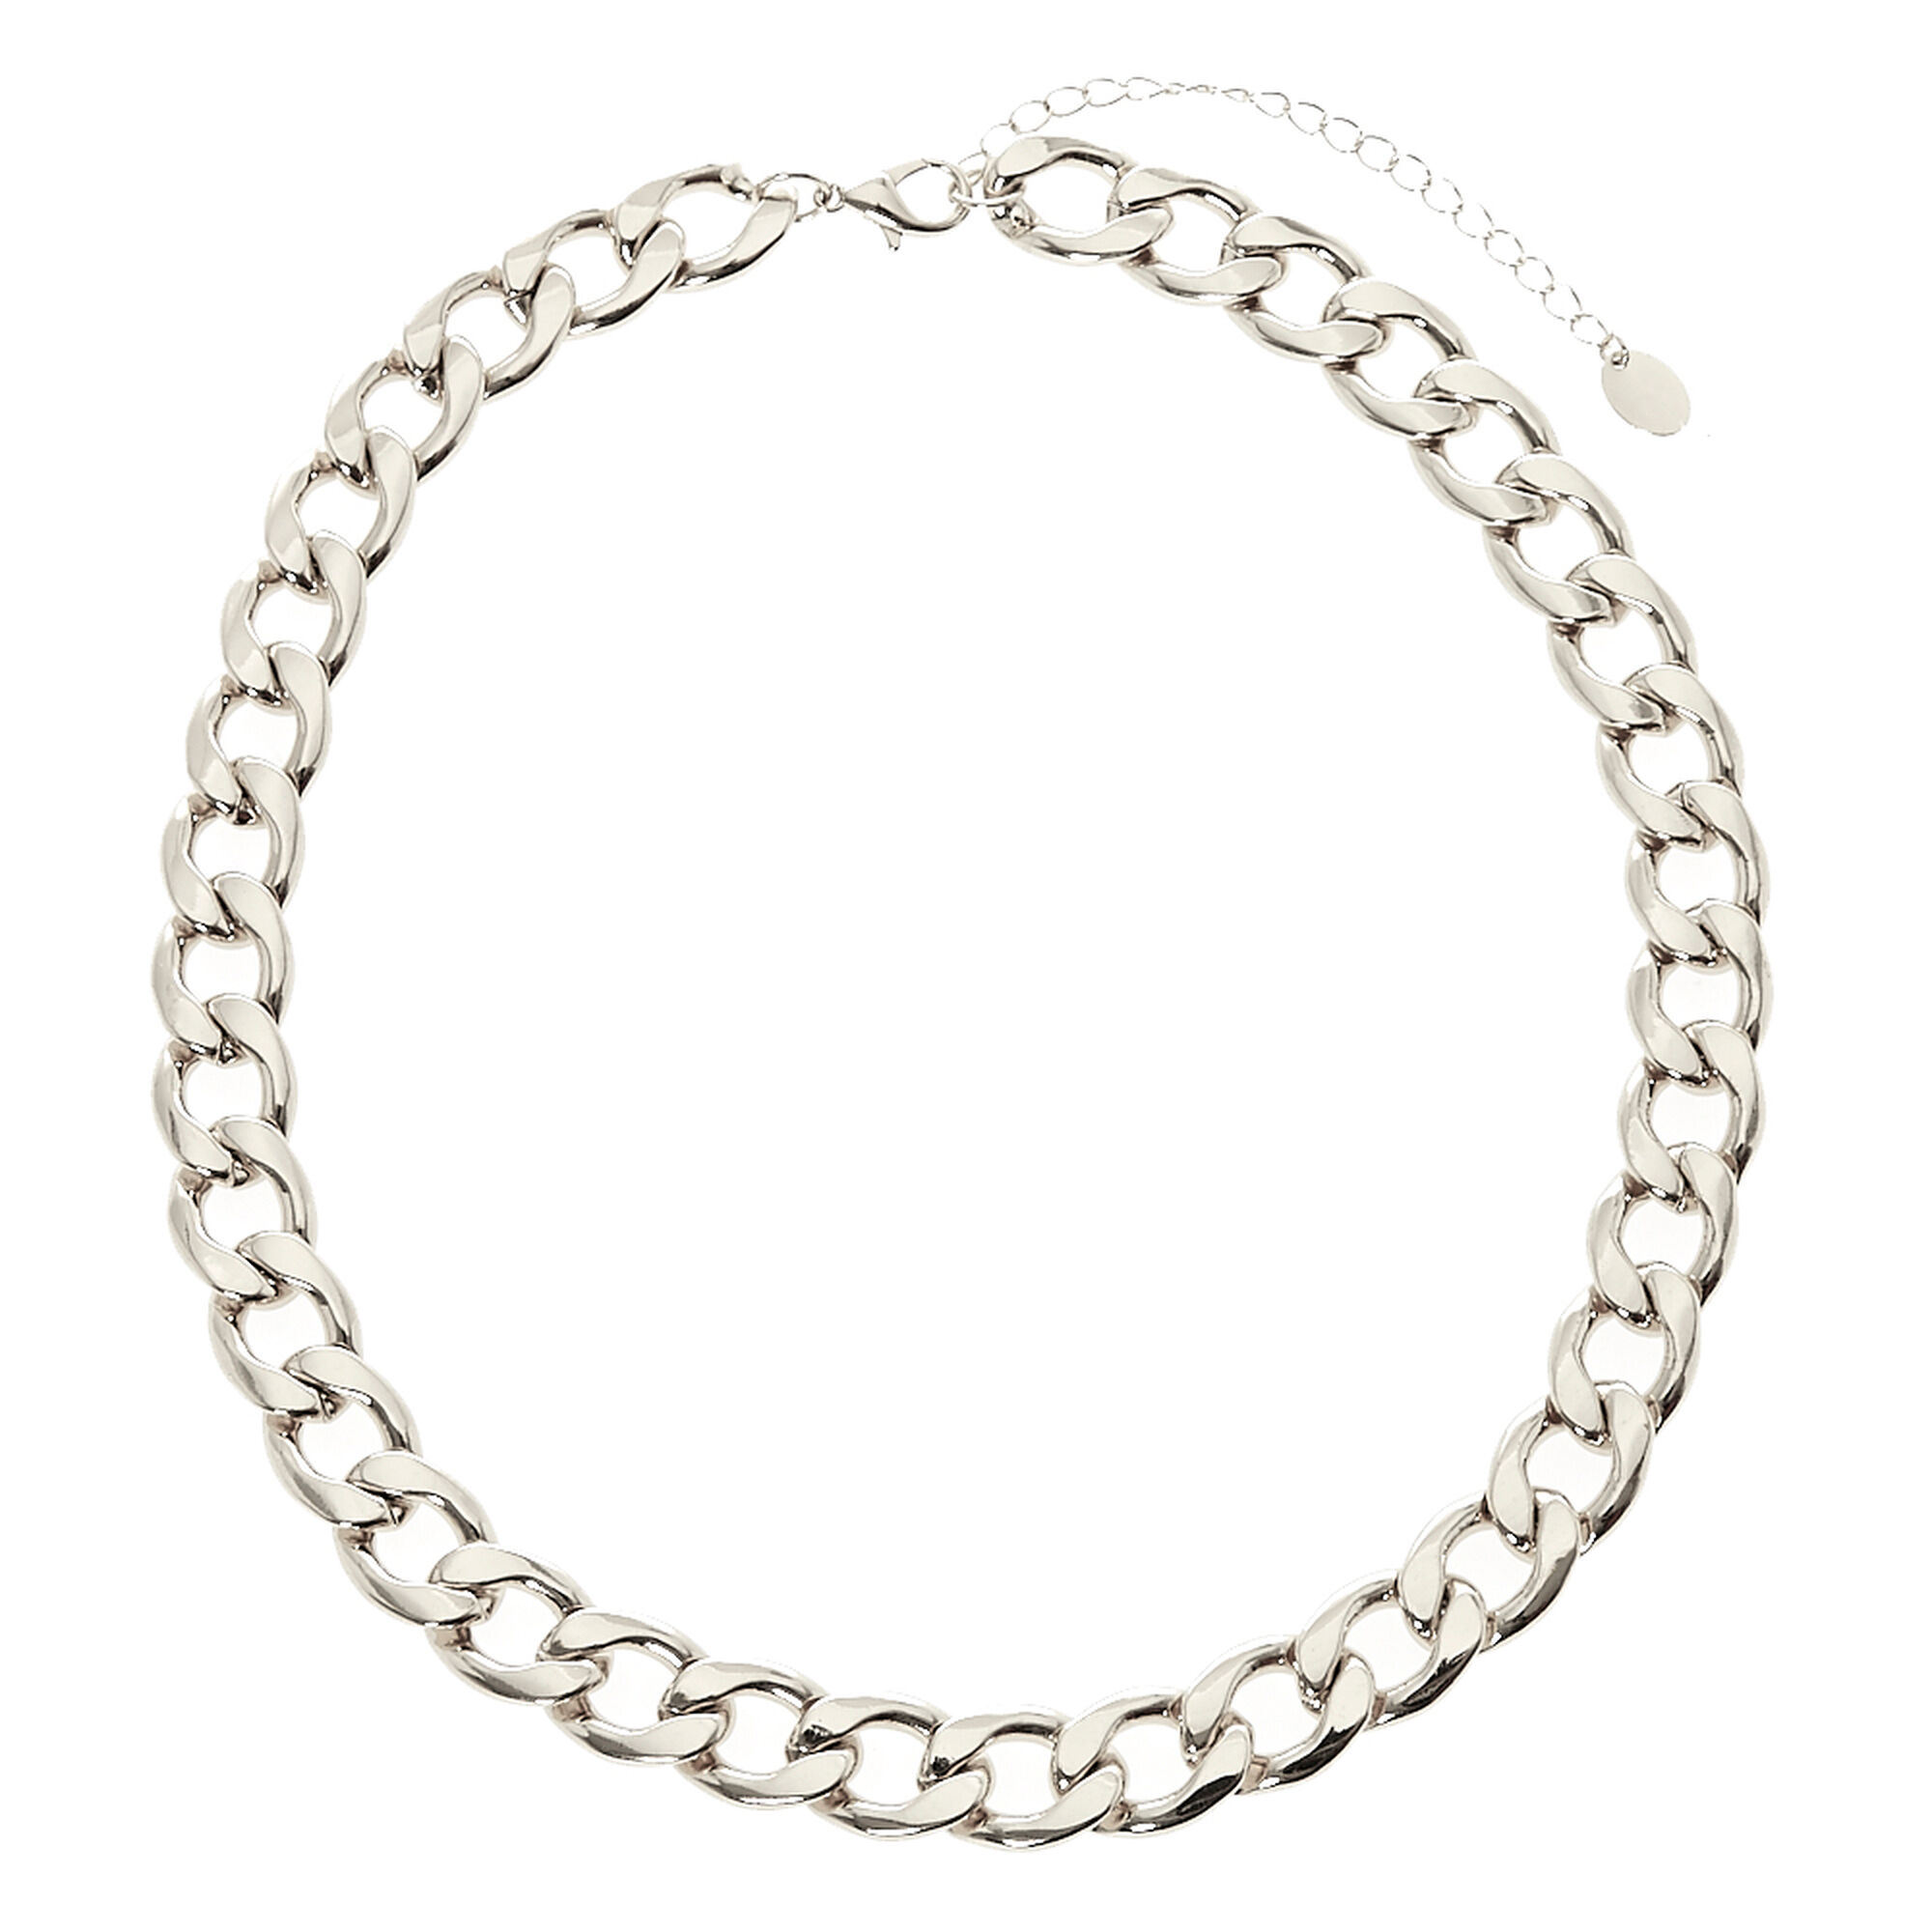 inches jewellery cable child jewelry amazon size sterling silver dp honolulu com chain company